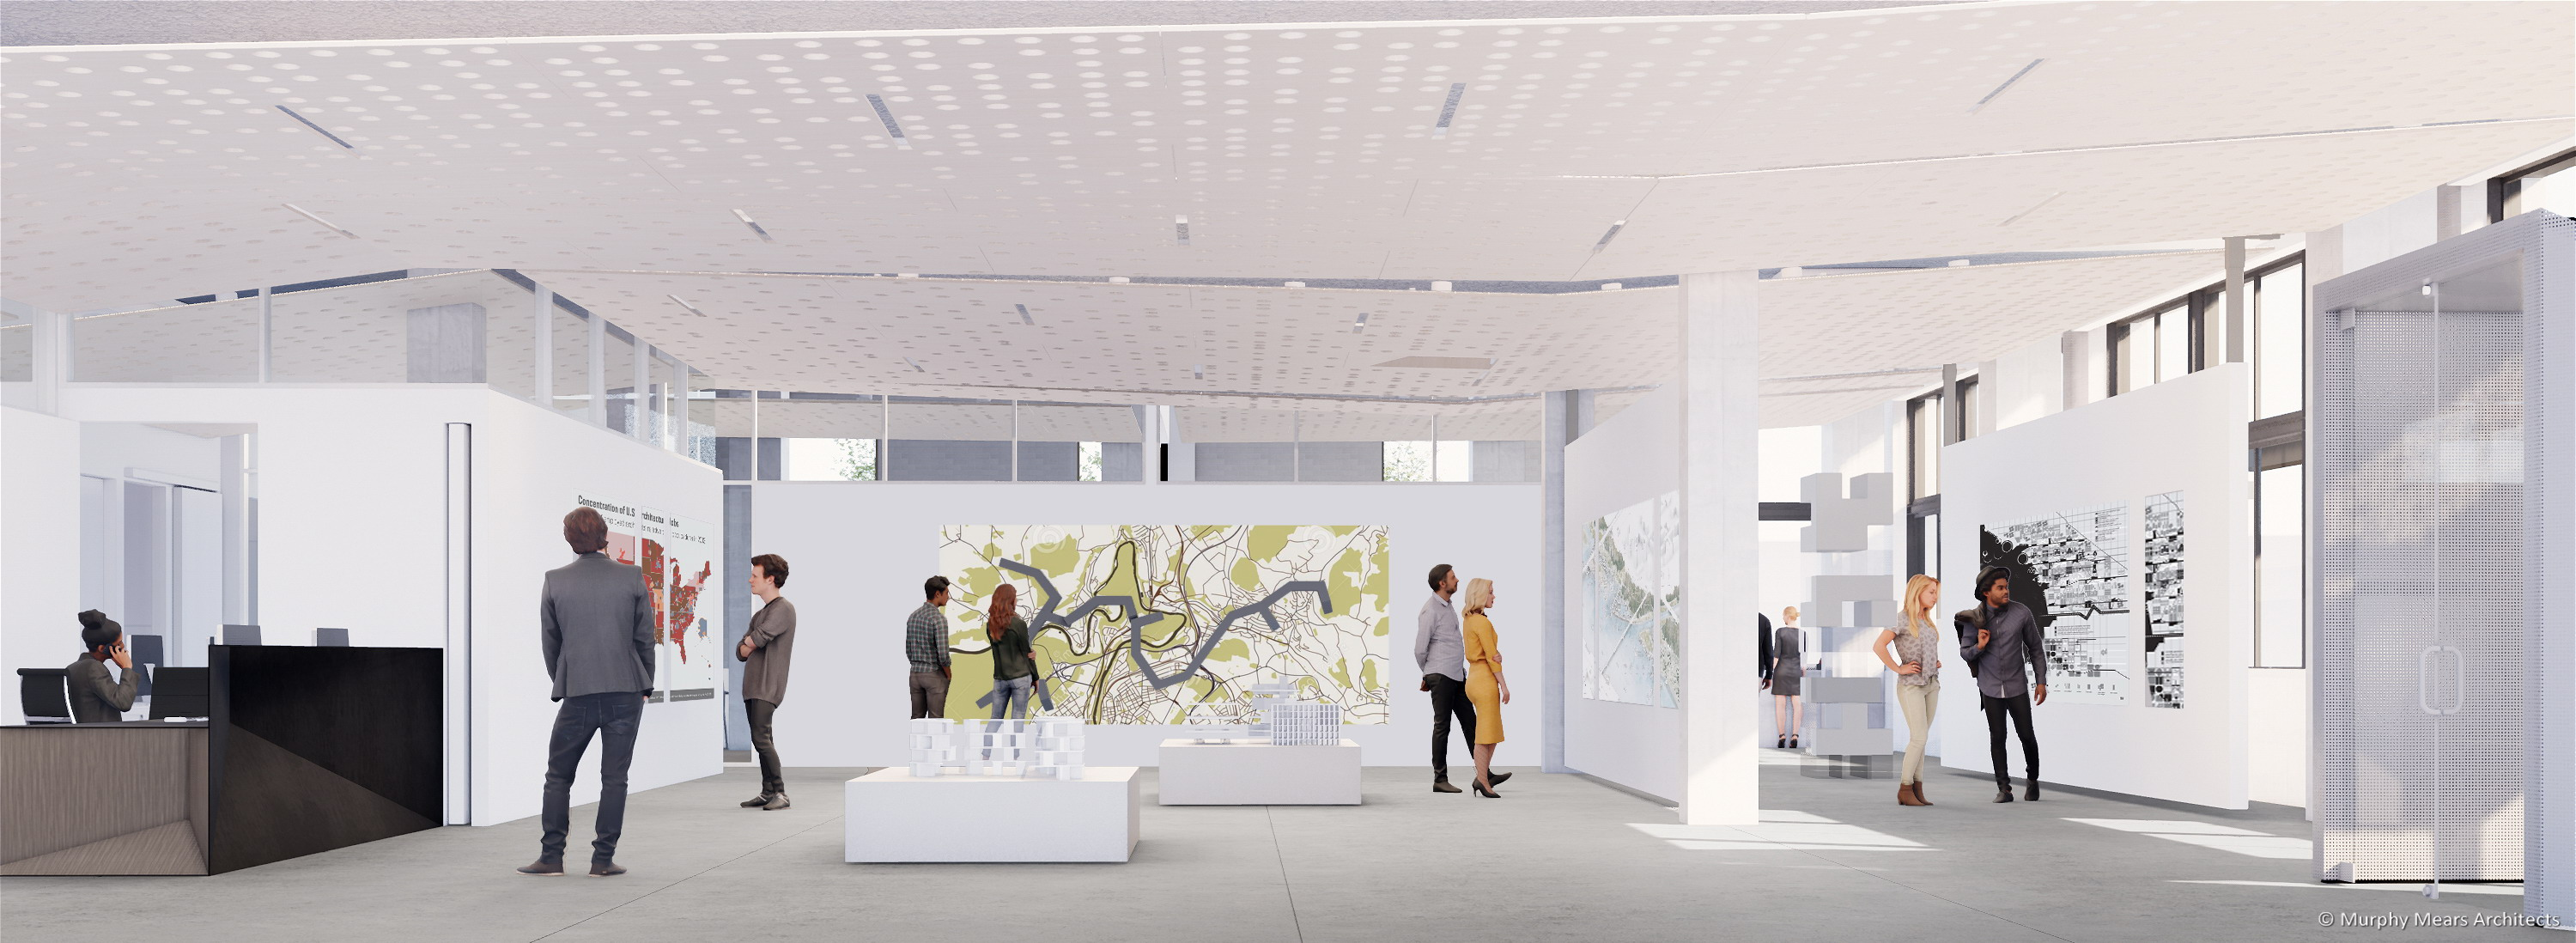 Architecture Center Houston rendering - Street level flexible space with an architectural exhibition.